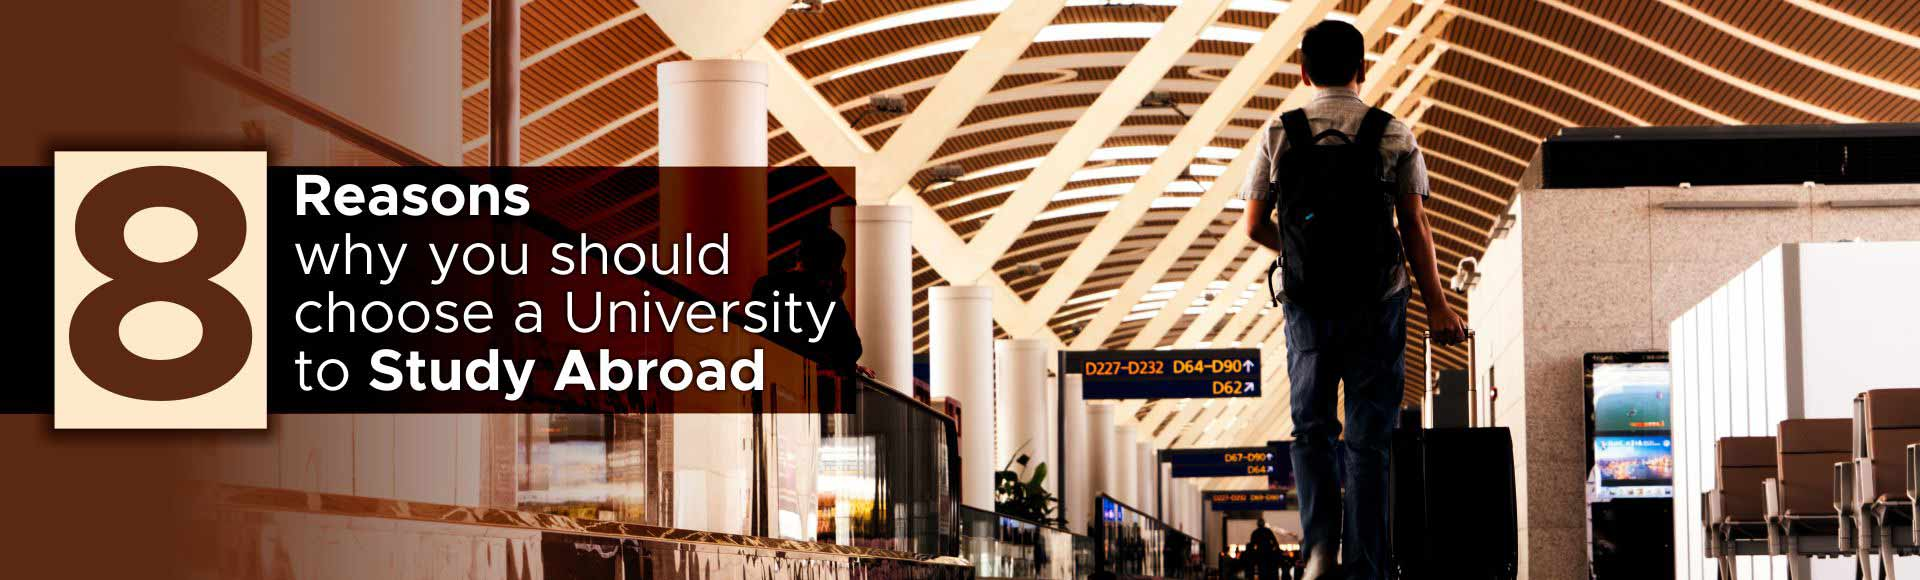 8 Reasons why you should choose a University to Study Abroad